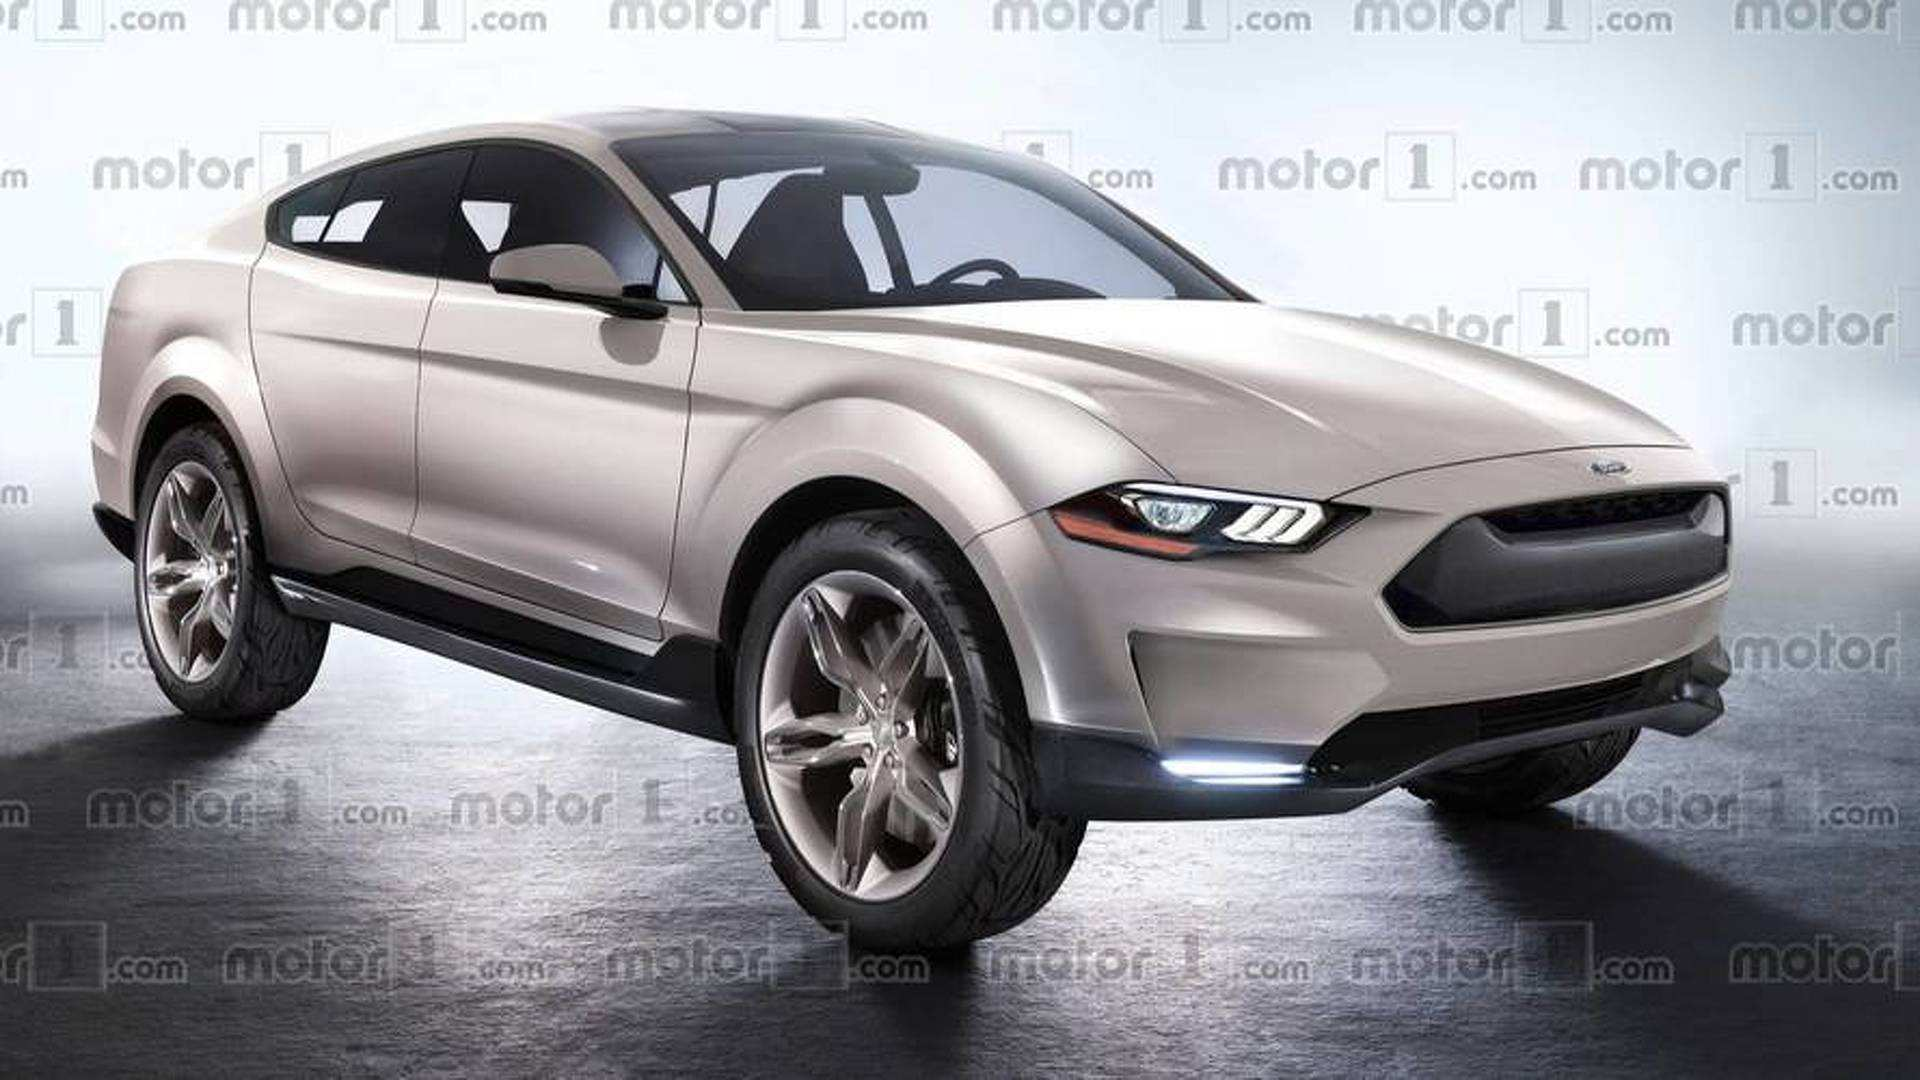 43 A Ford Concept Cars 2020 Price